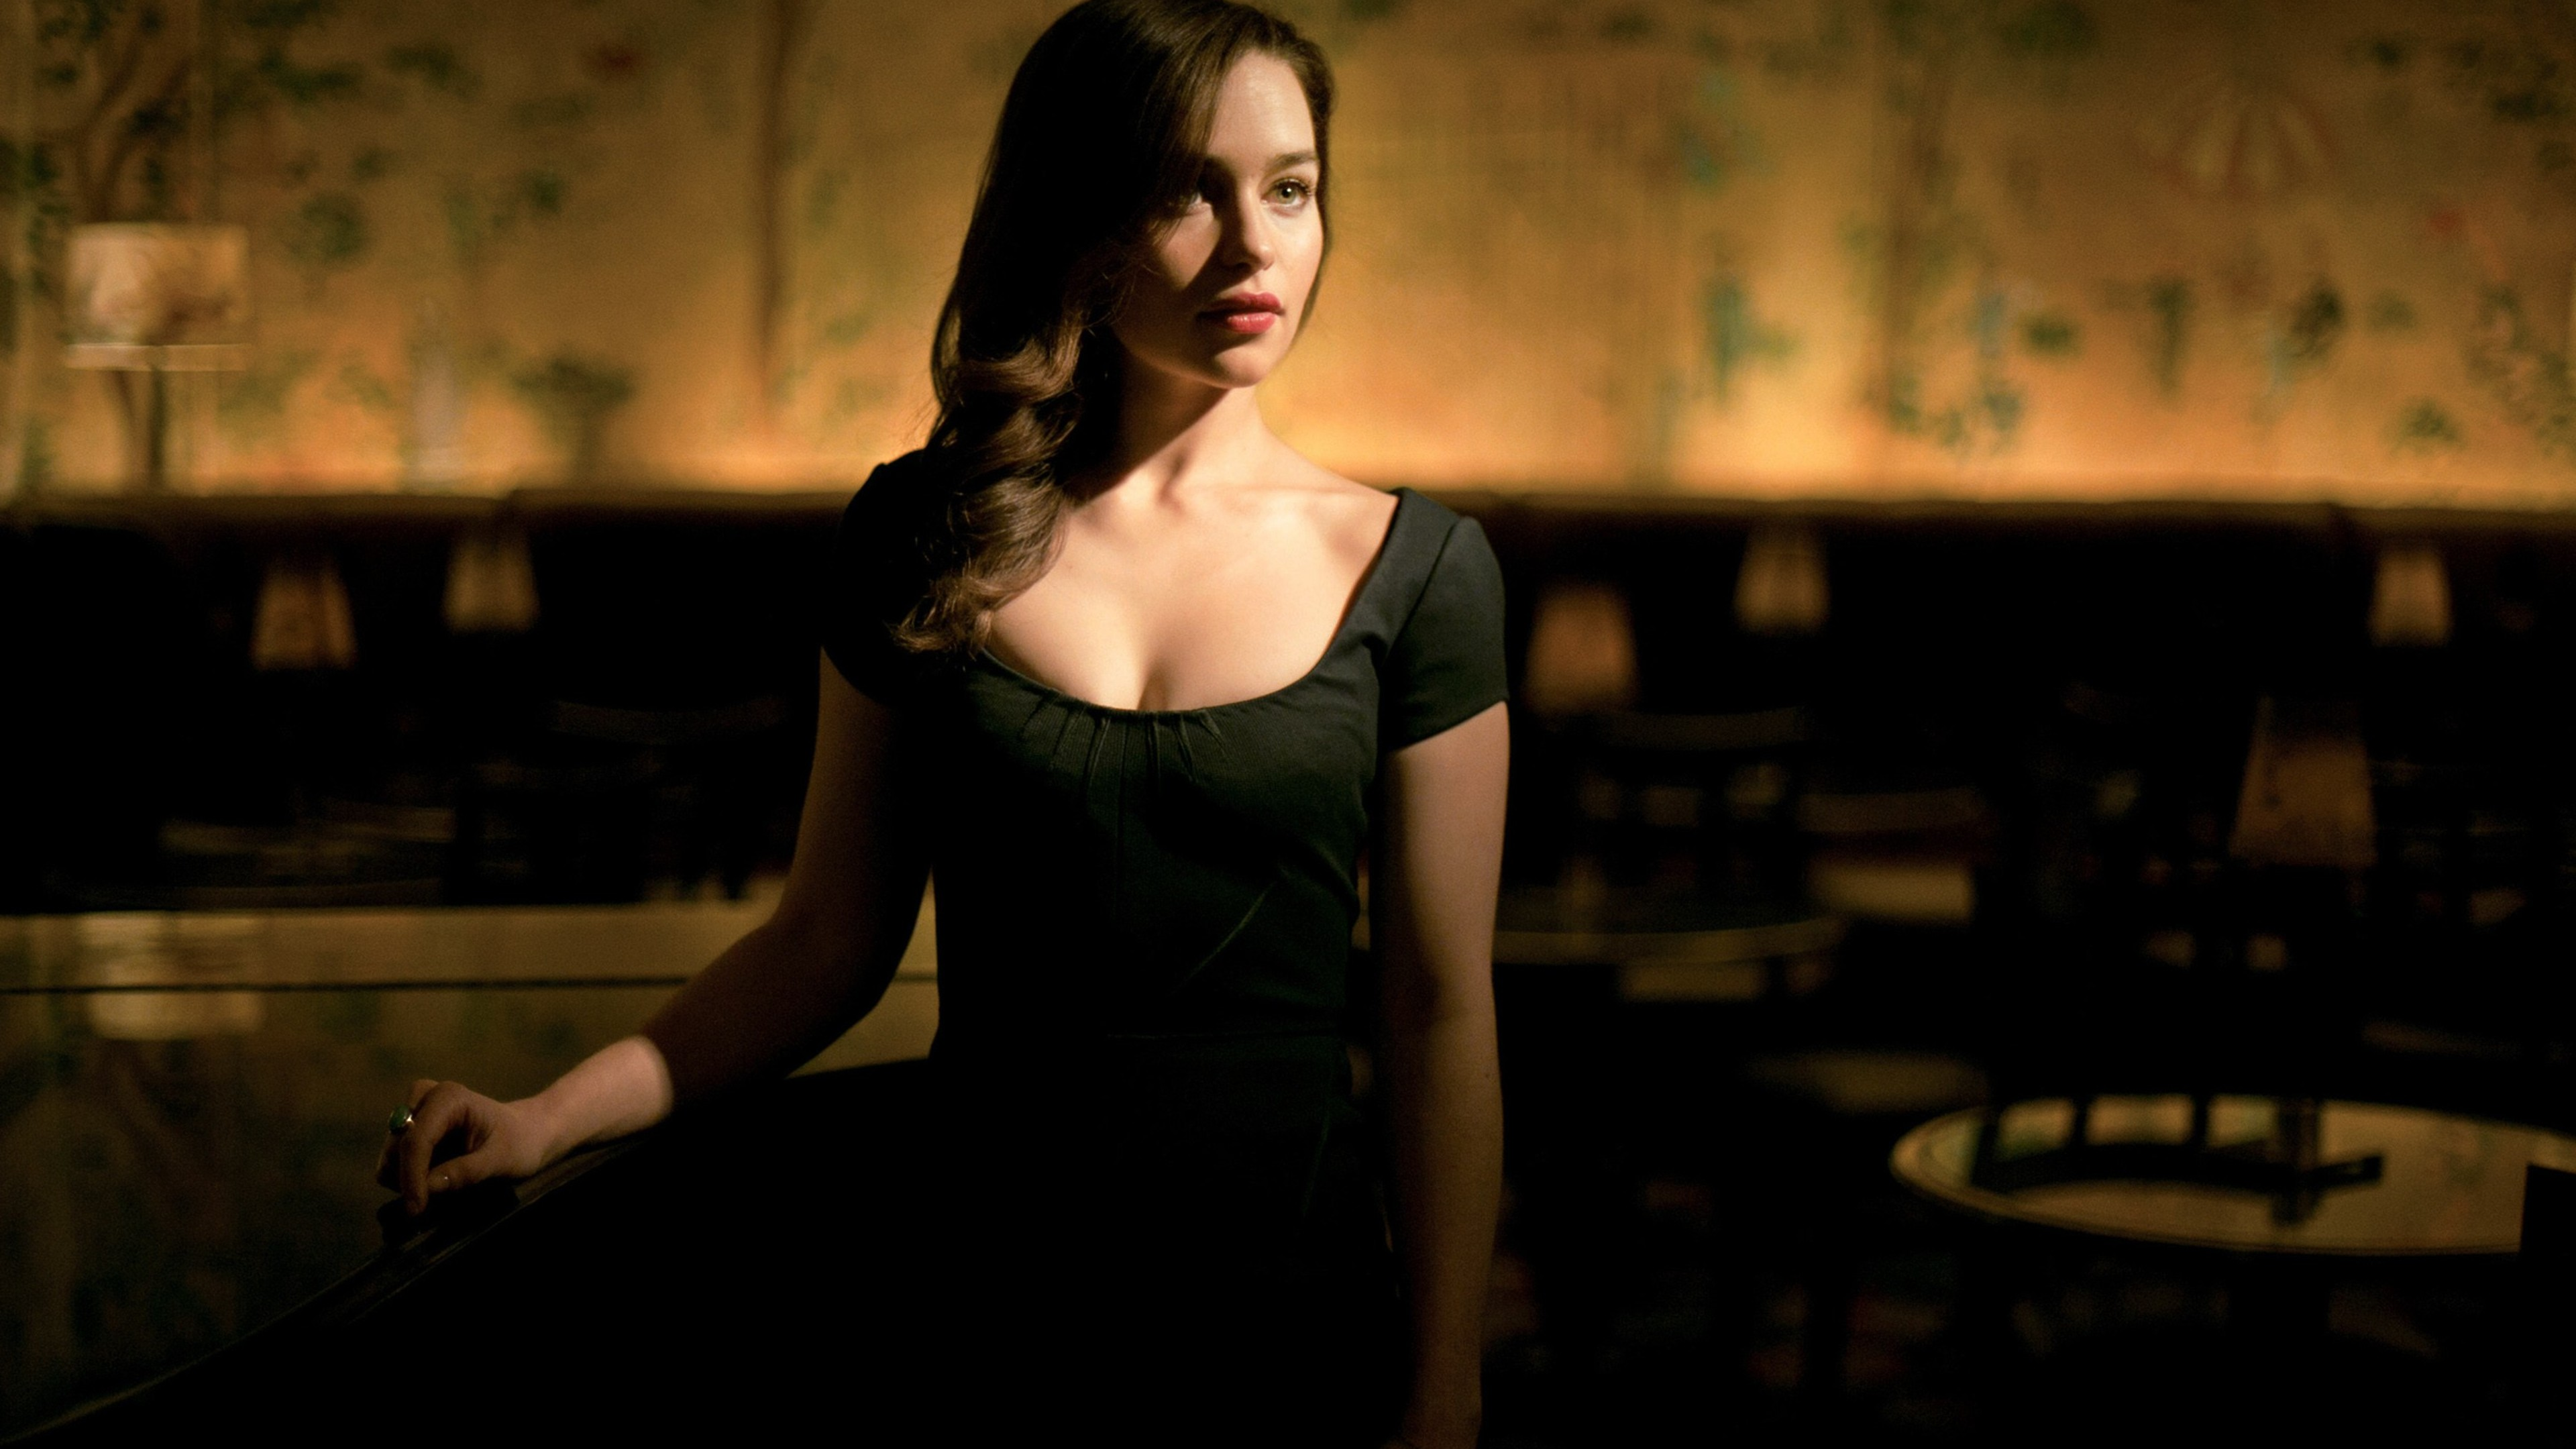 emilia clarke cleavage 1536855755 - Emilia Clarke Cleavage - tv shows wallpapers, game of thrones wallpapers, emilia clarke wallpapers, celebrities wallpapers